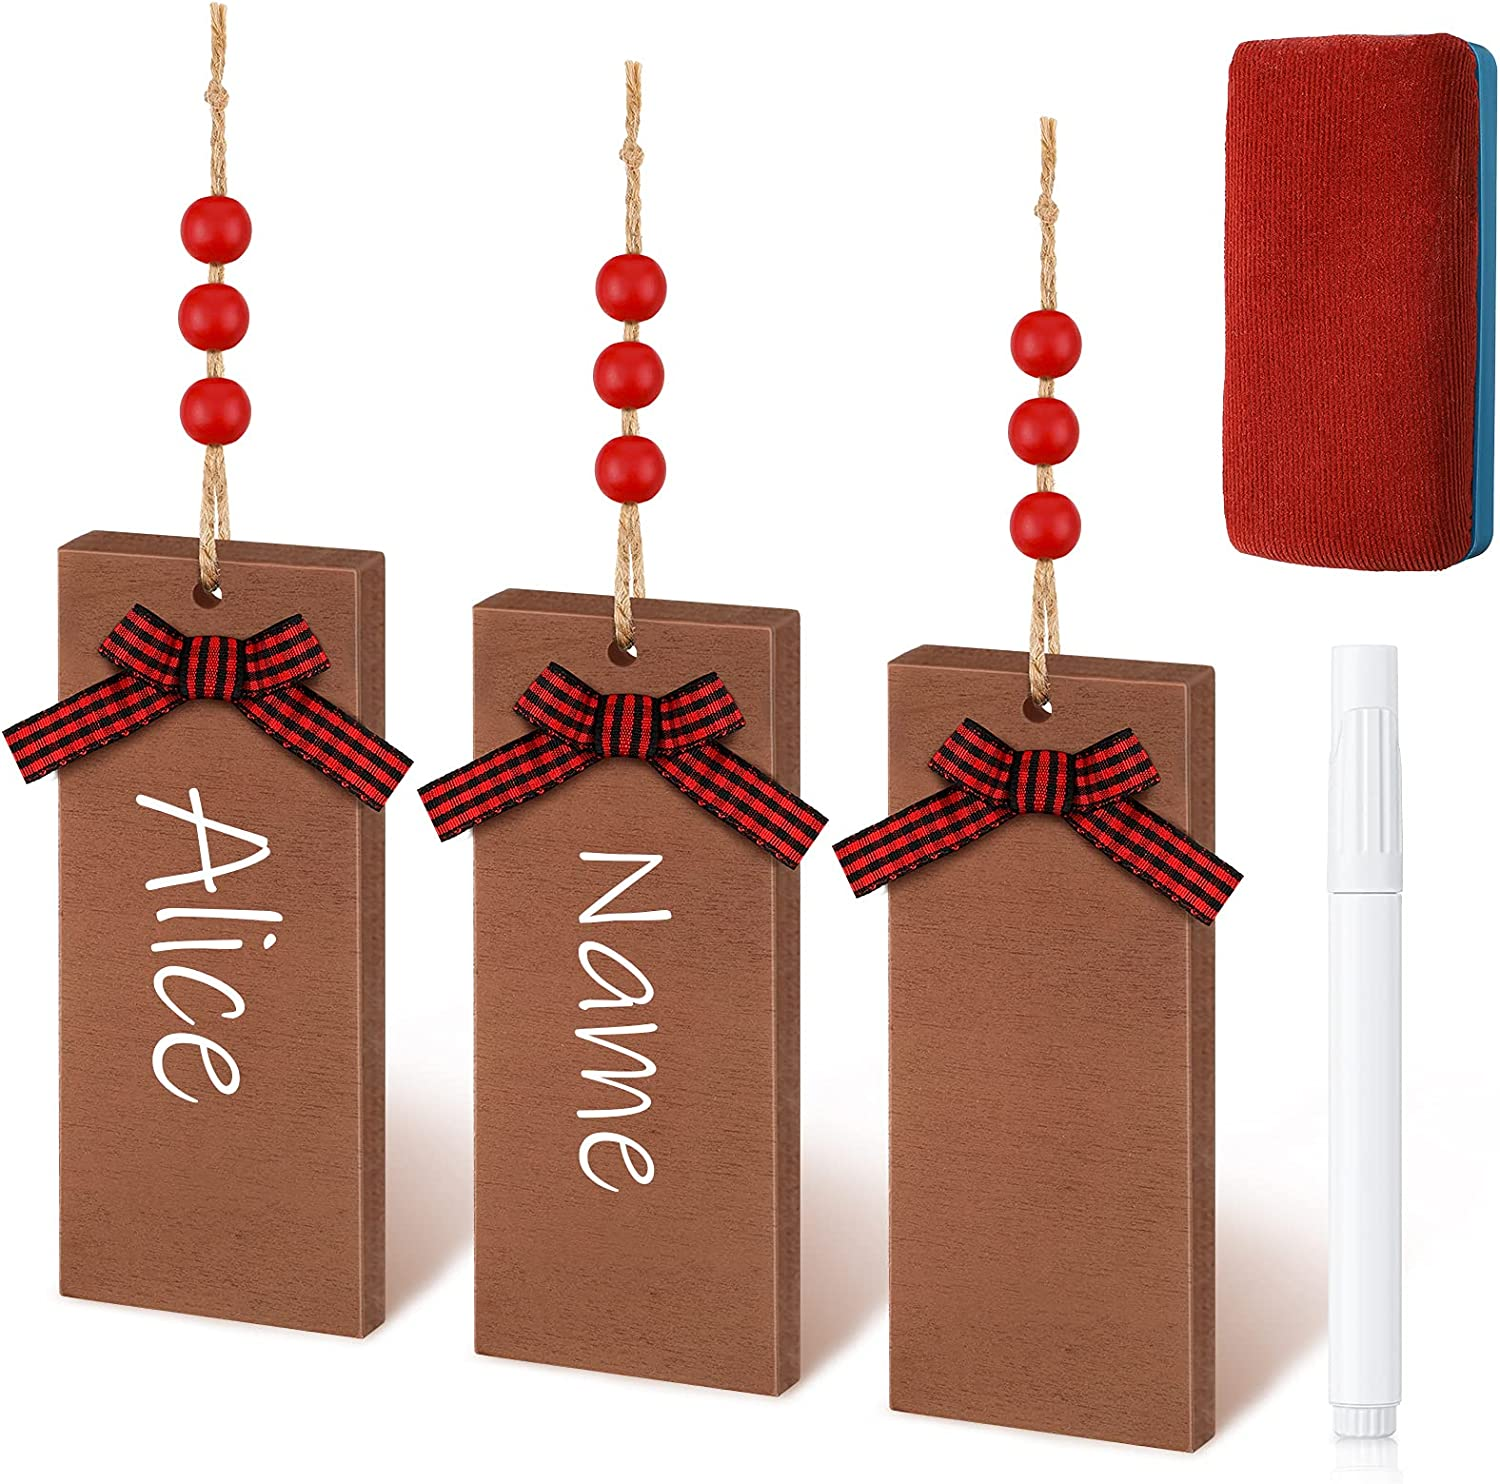 Jetec Detroit Mall Christmas Stockings Name Tags Pieces 3 Perso Set Including Minneapolis Mall